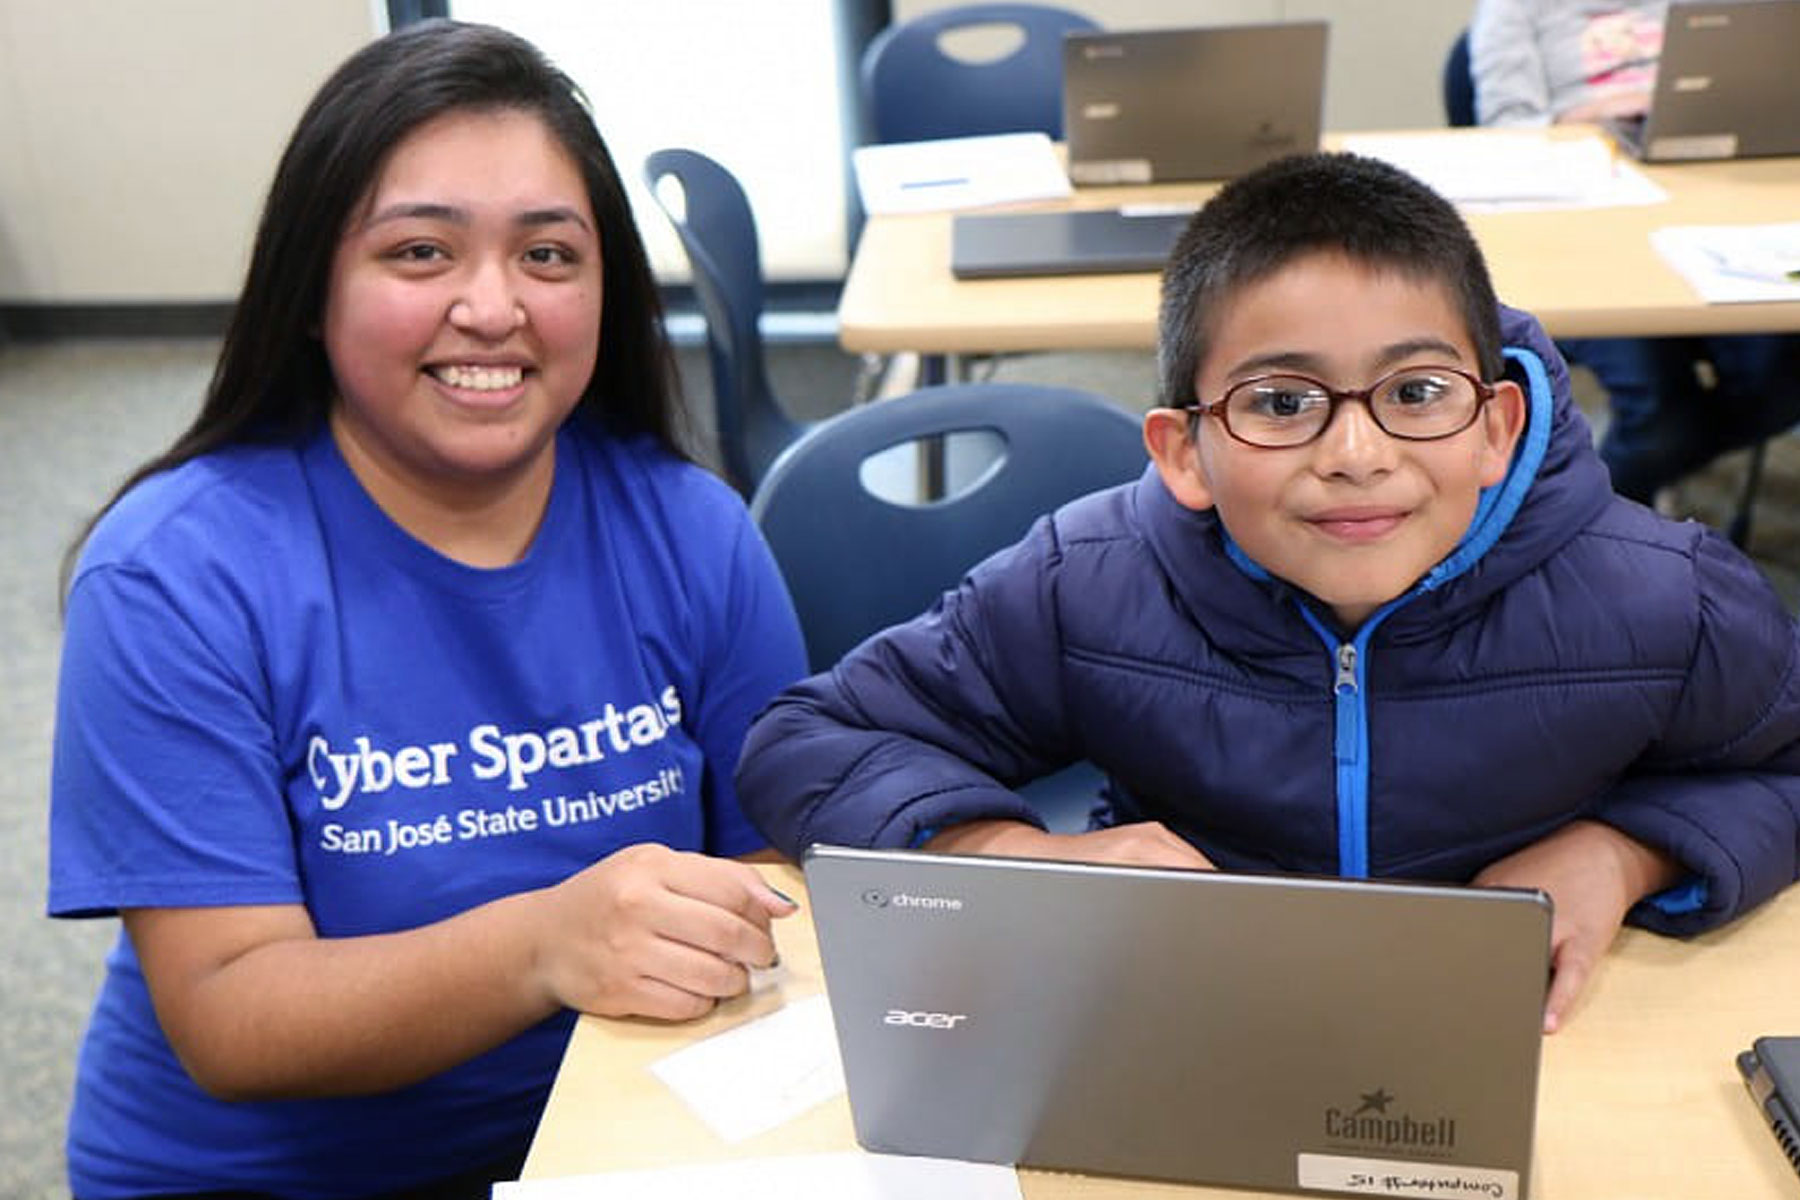 Cyber Spartans Encourage Next Generation of Coders.